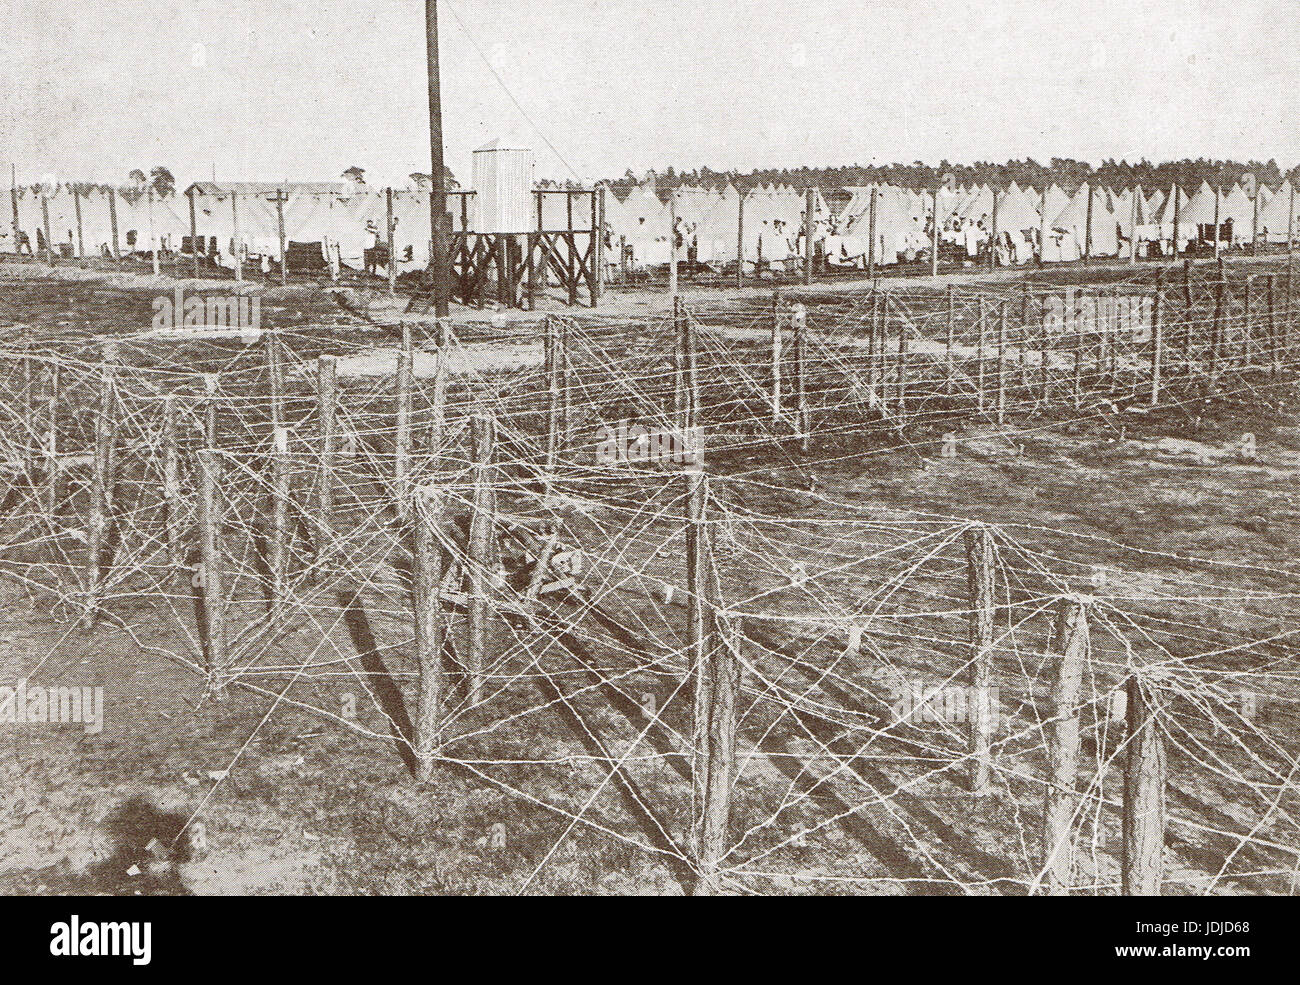 WW 1 Internment camp, Camberley, 1914 - Stock Image